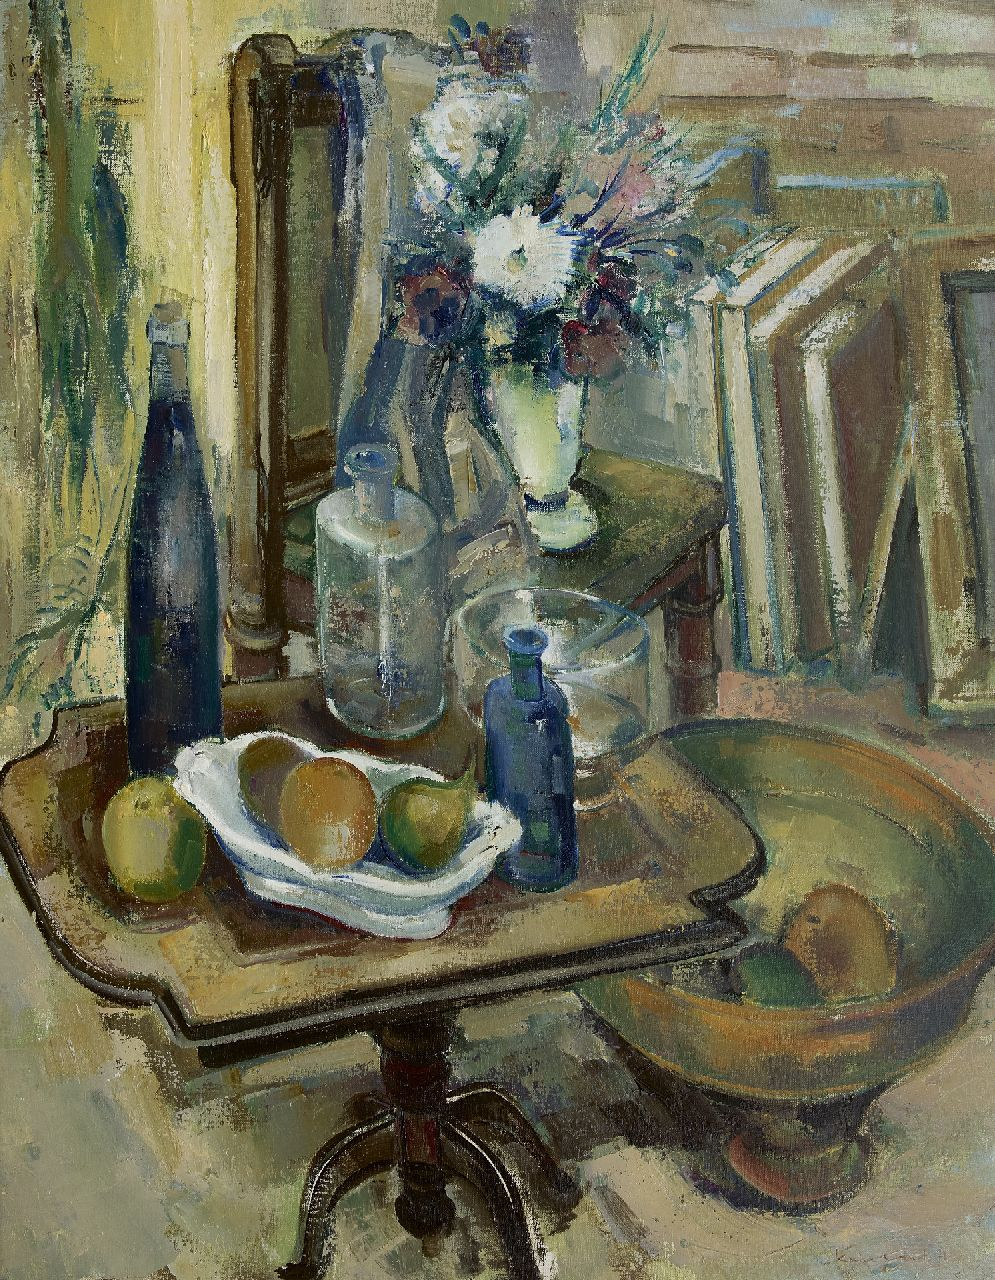 Colnot K.M.H.  | 'Karel' Marinus Hendrikus Colnot, Studio still life, oil on canvas 95.2 x 75.3 cm, signed l.r. and dated '72